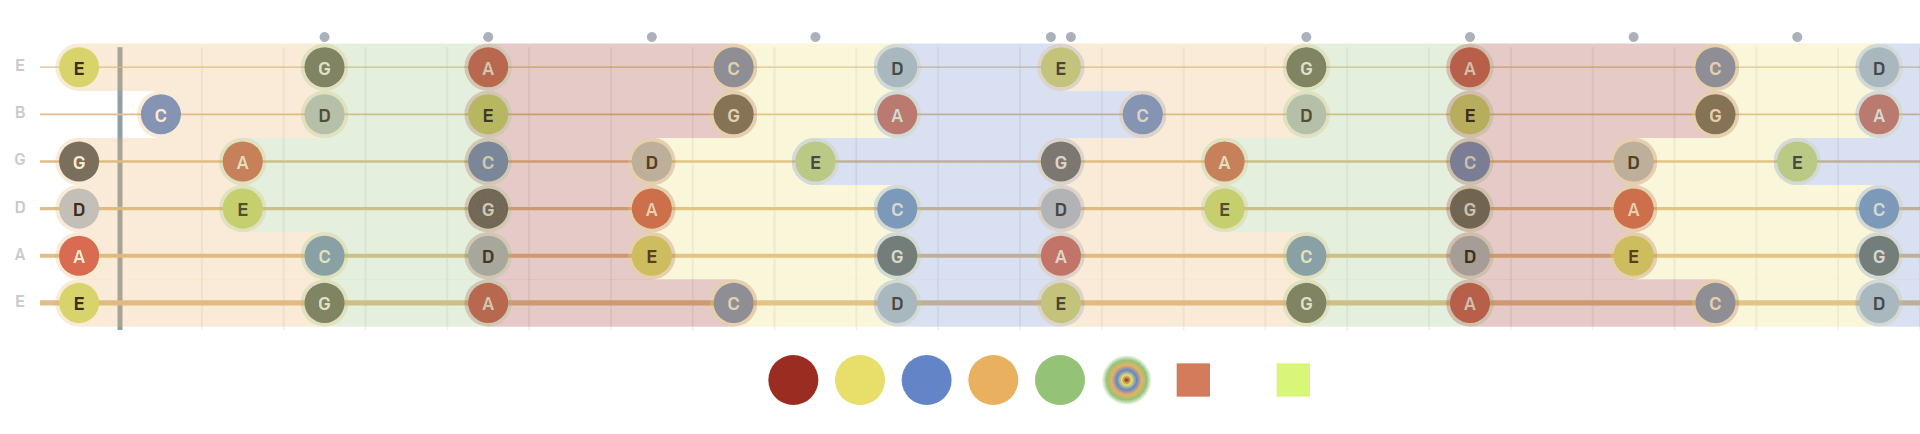 pentatonic minor scale shapes